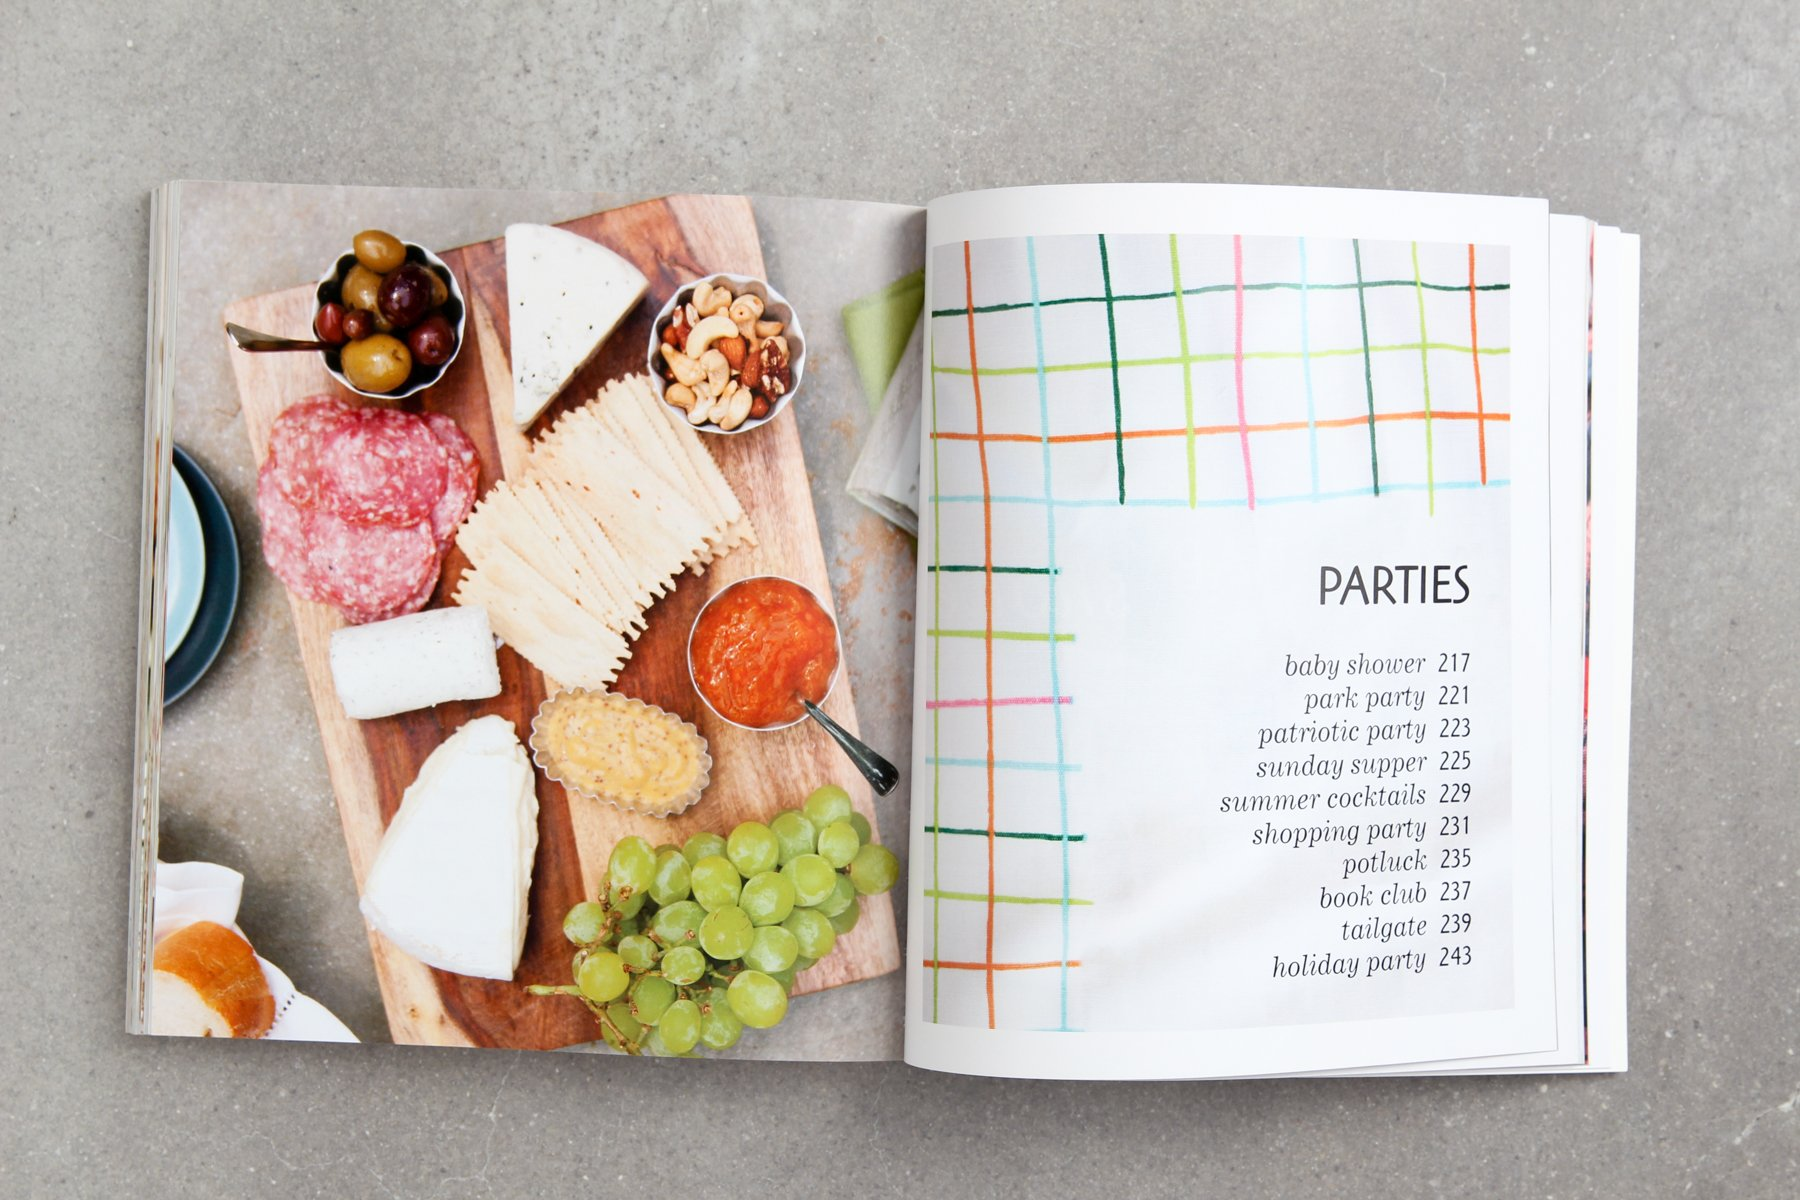 See Inside Rachel Hollis Upscale Downhome Cookbook via @PagingSupermom